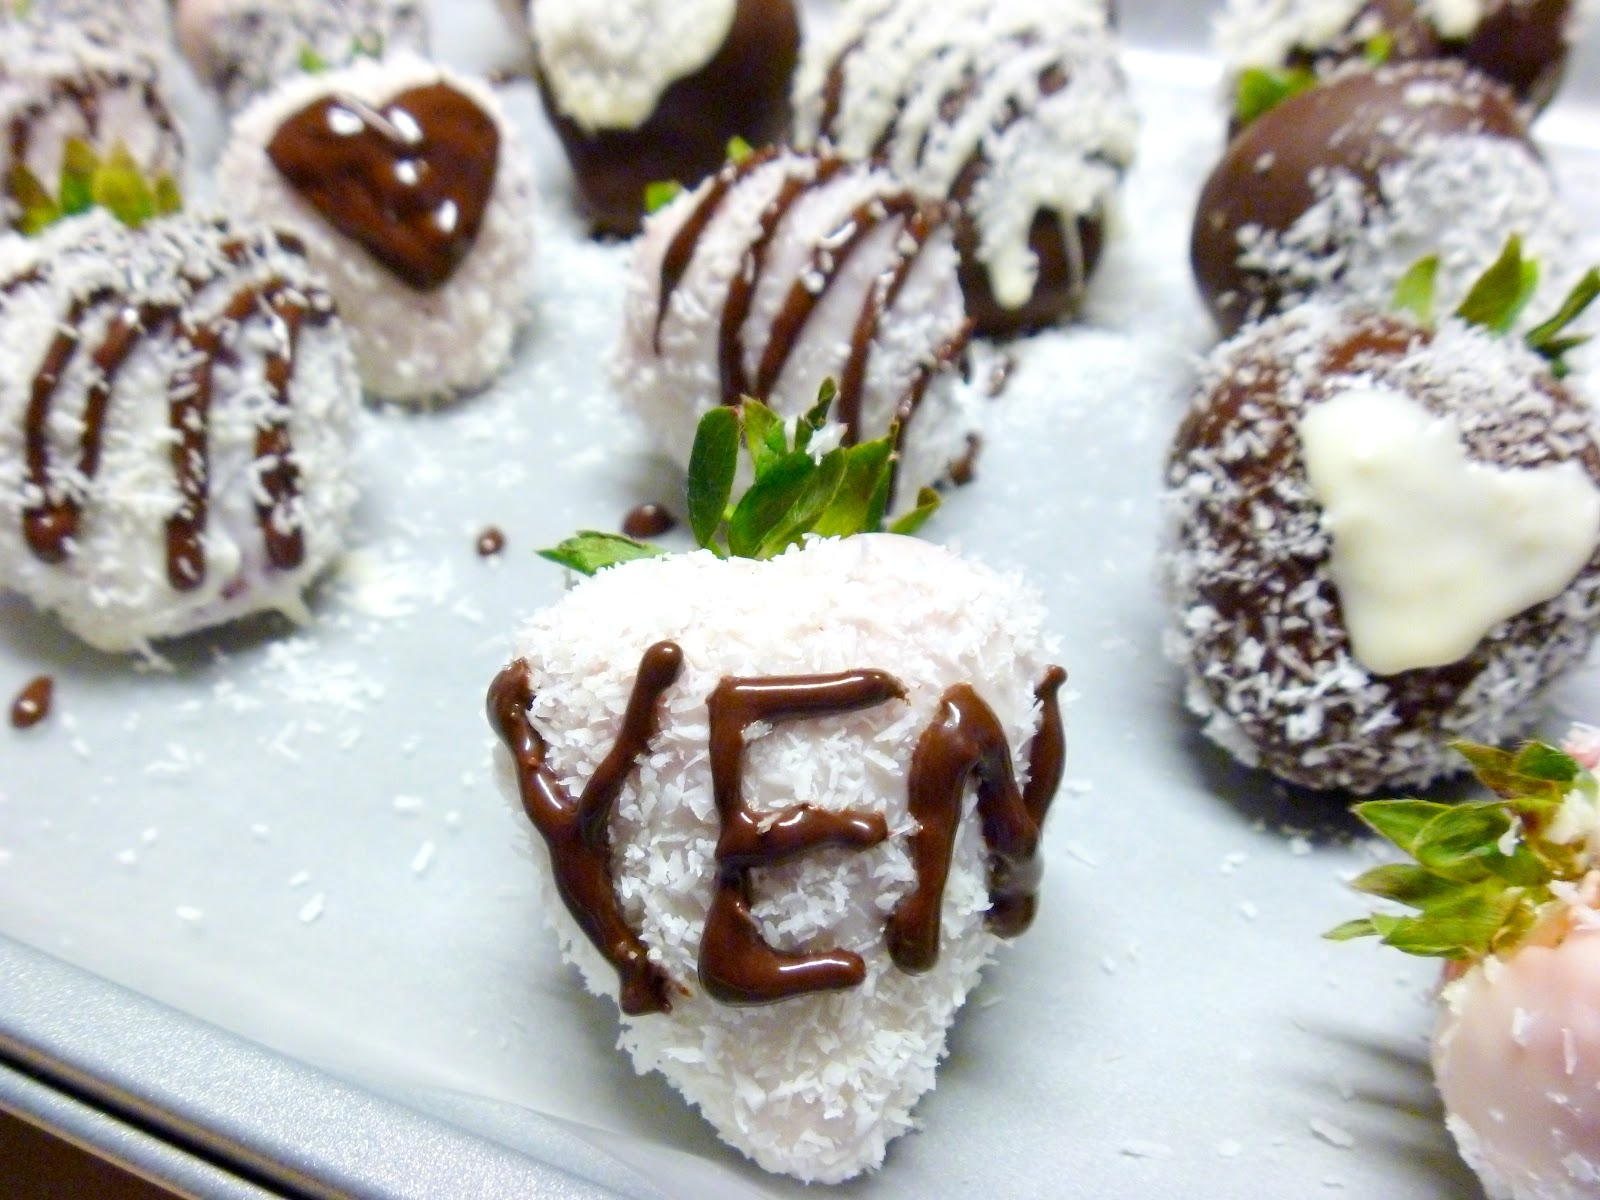 LetsGetCookinggg ♥ Yen: Chocolate Covered Strawberries